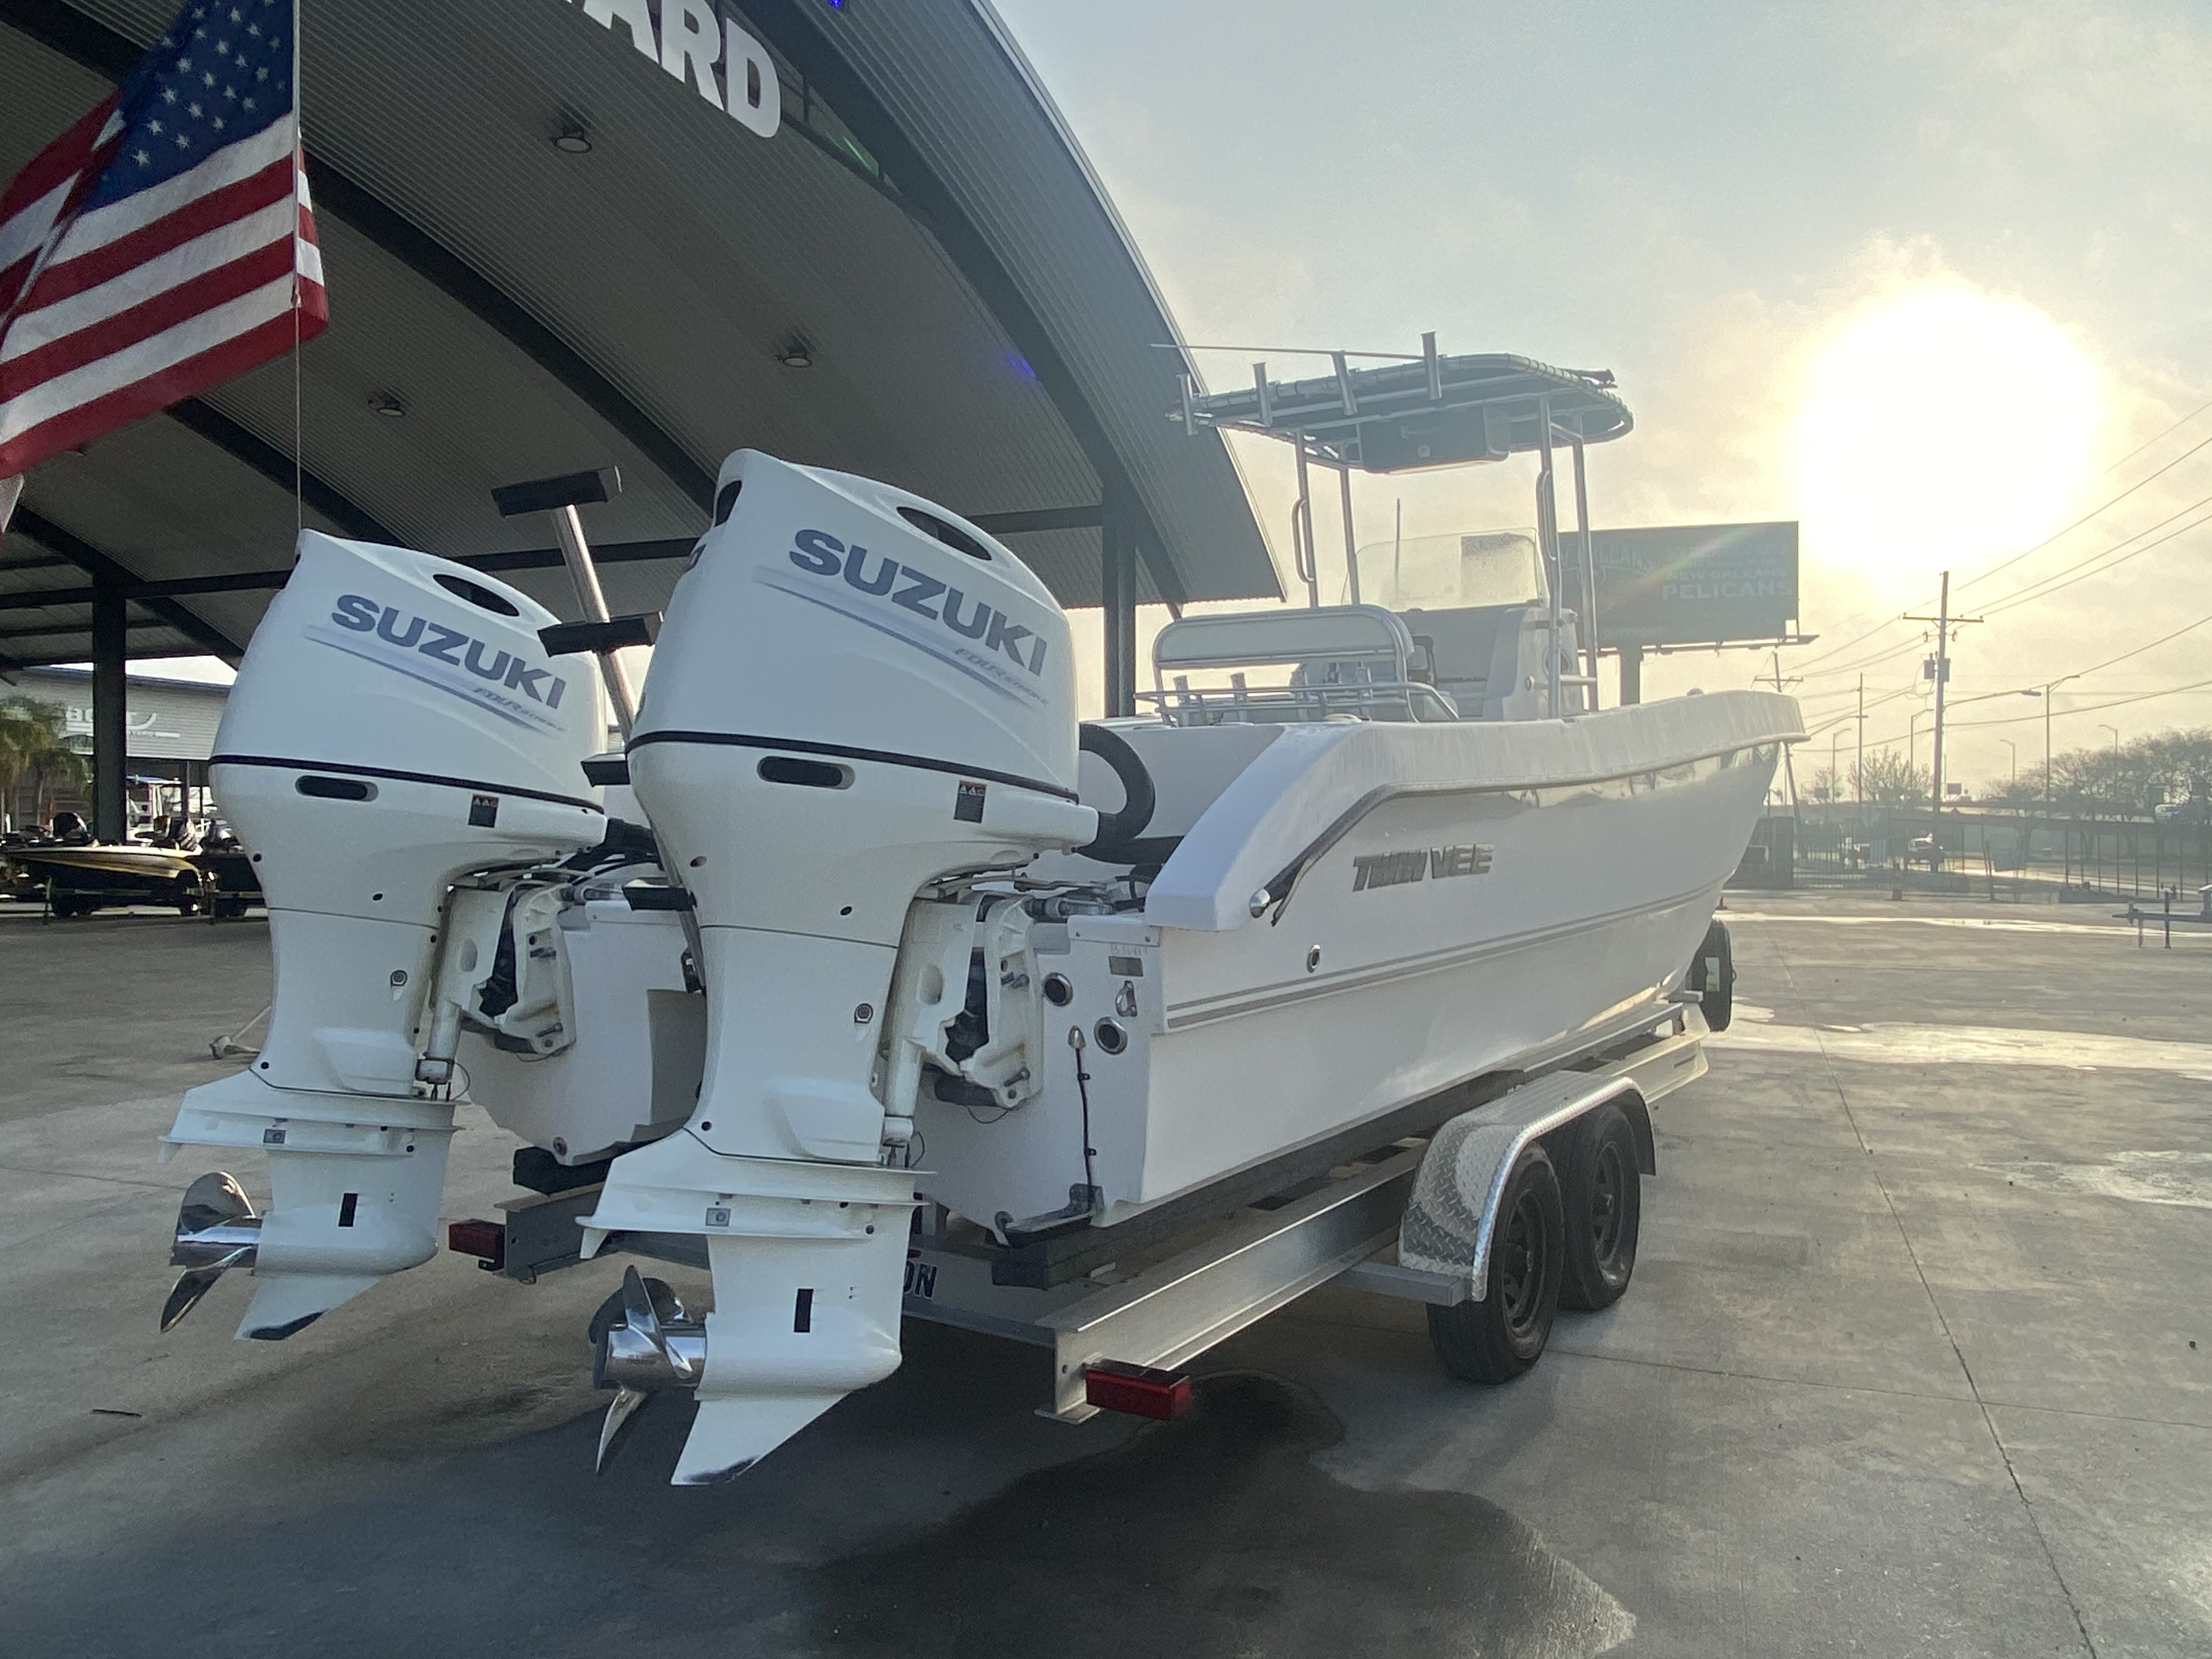 2020 Twin Vee boat for sale, model of the boat is 26 Pro & Image # 2 of 24